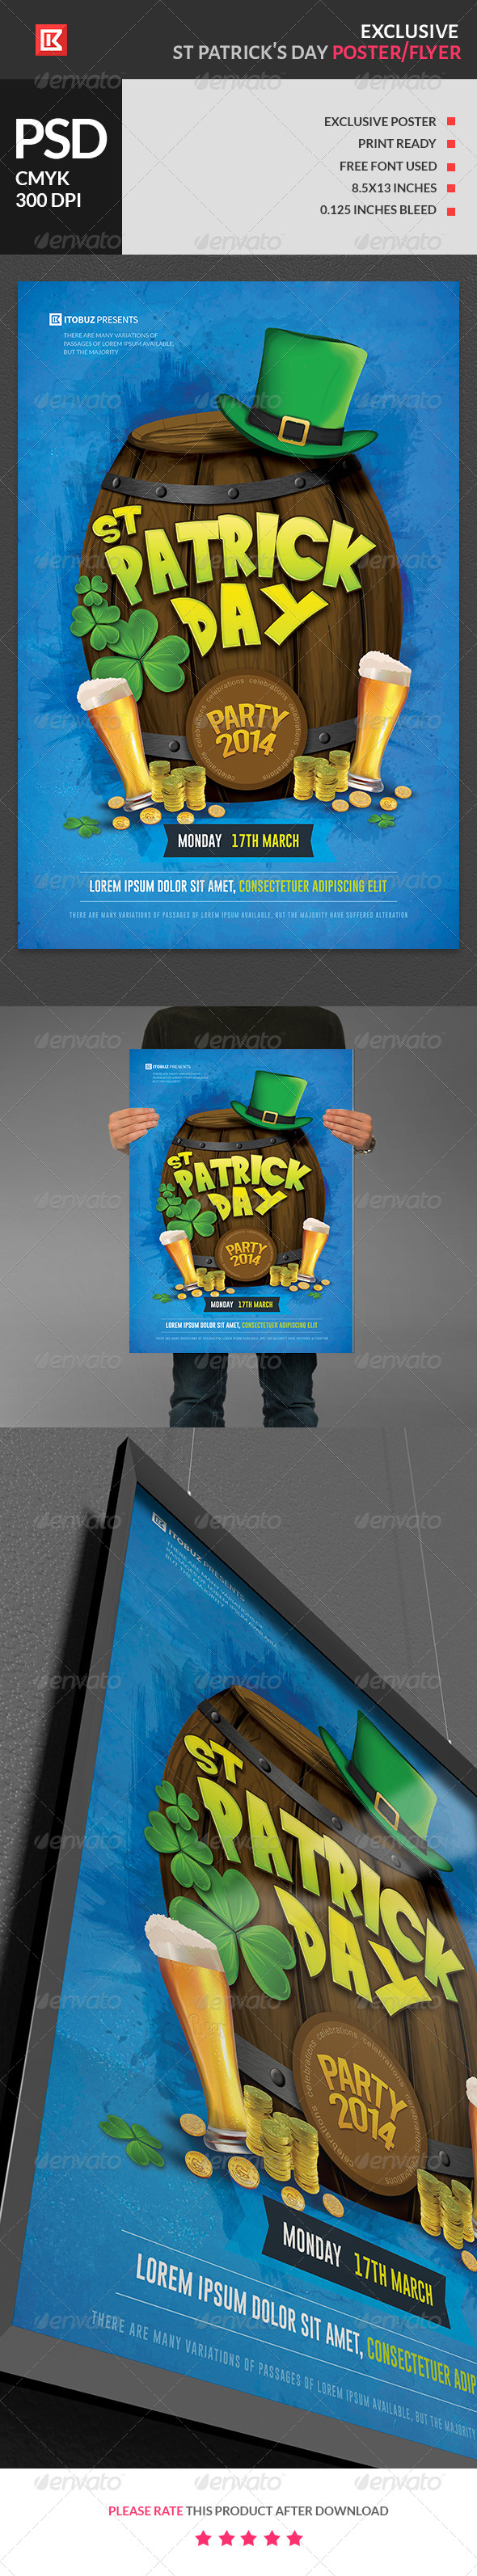 GraphicRiver Exclusive St Patrick s Day Poster 6985076